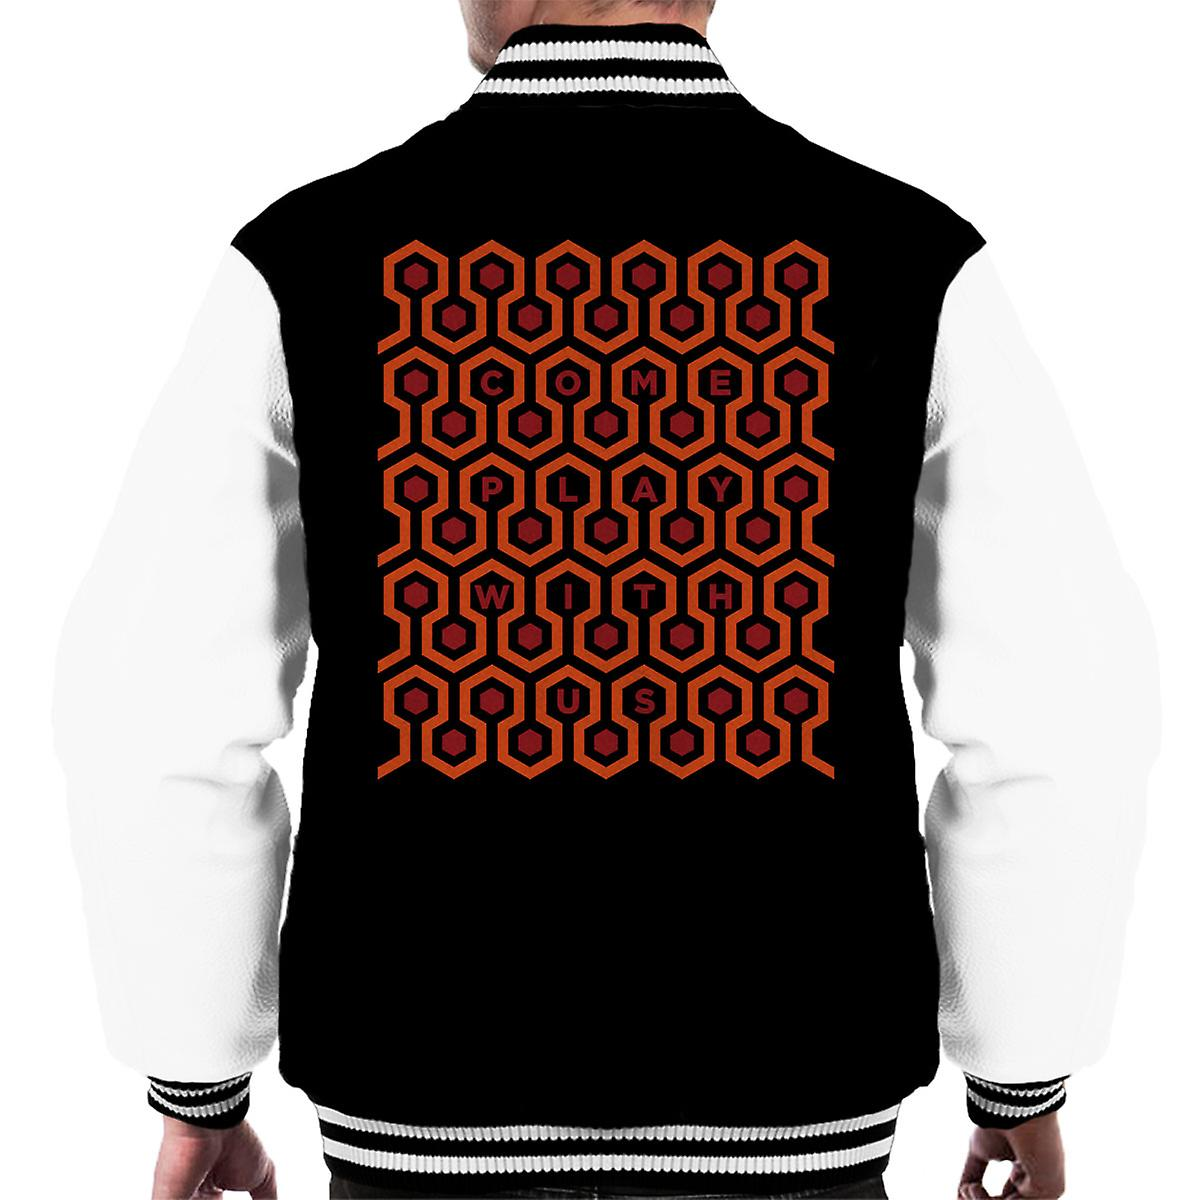 Come Play With Us: The Shining Come Play With Us Men's Varsity Jacket